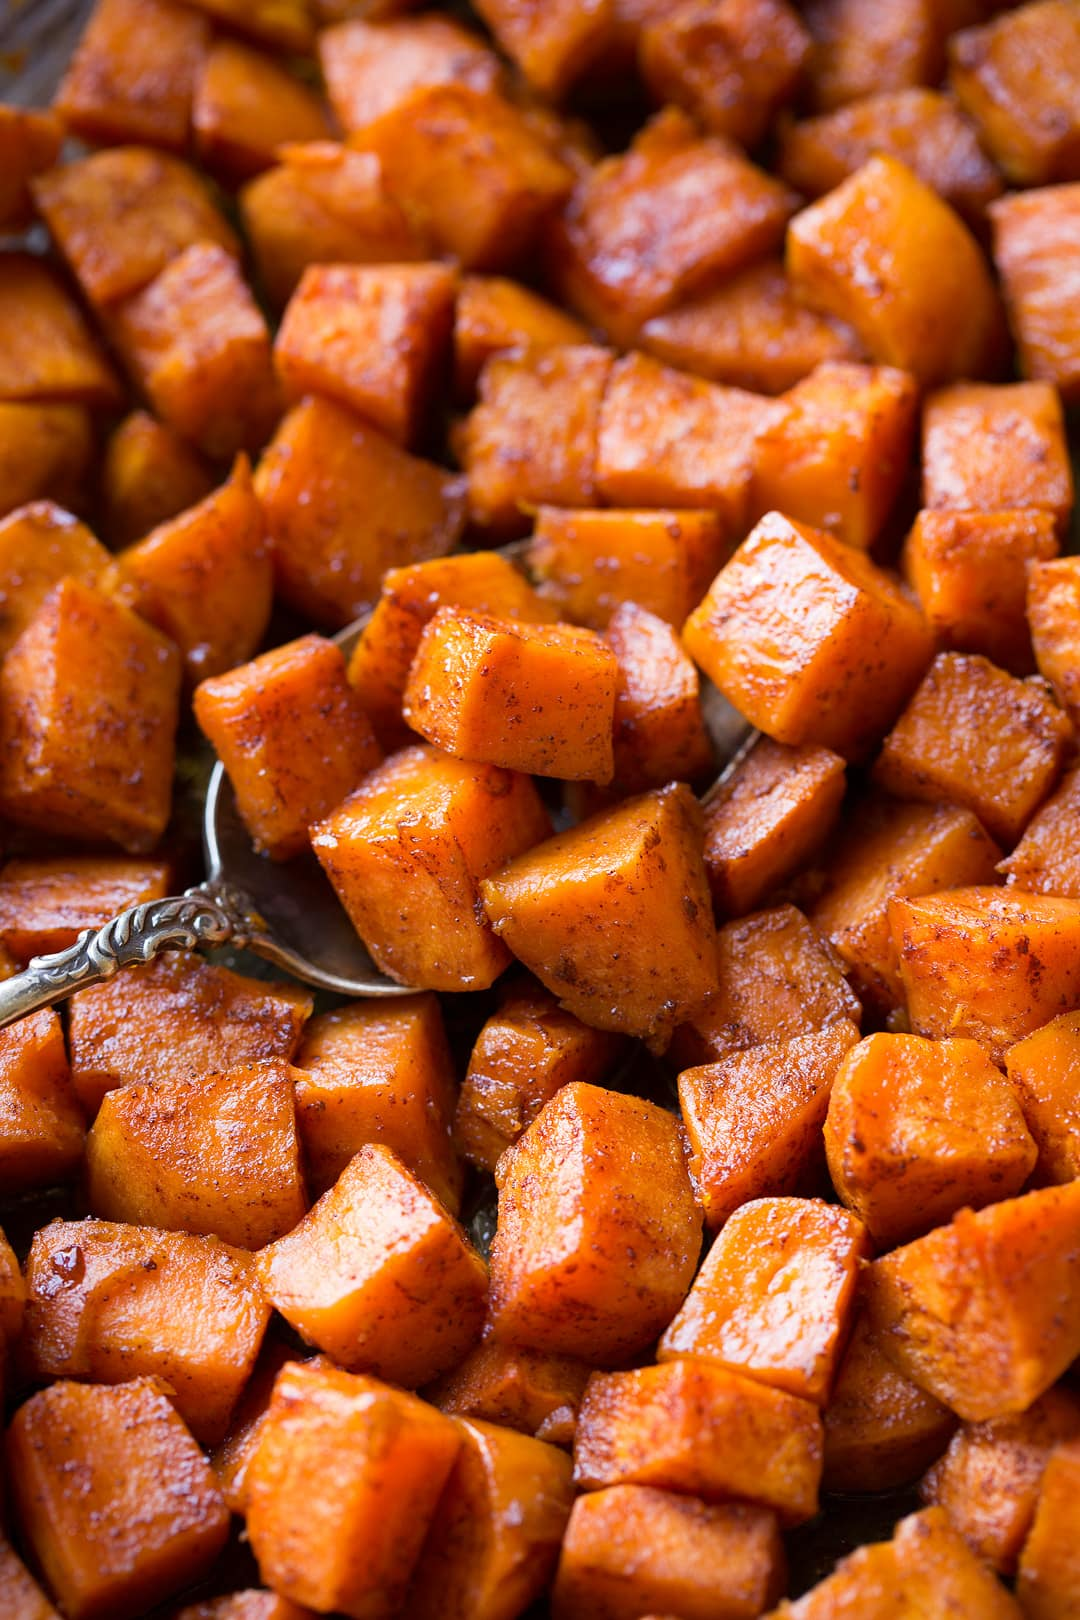 Roasted Sweet Potatoes with Cinnamon and Honey Butter